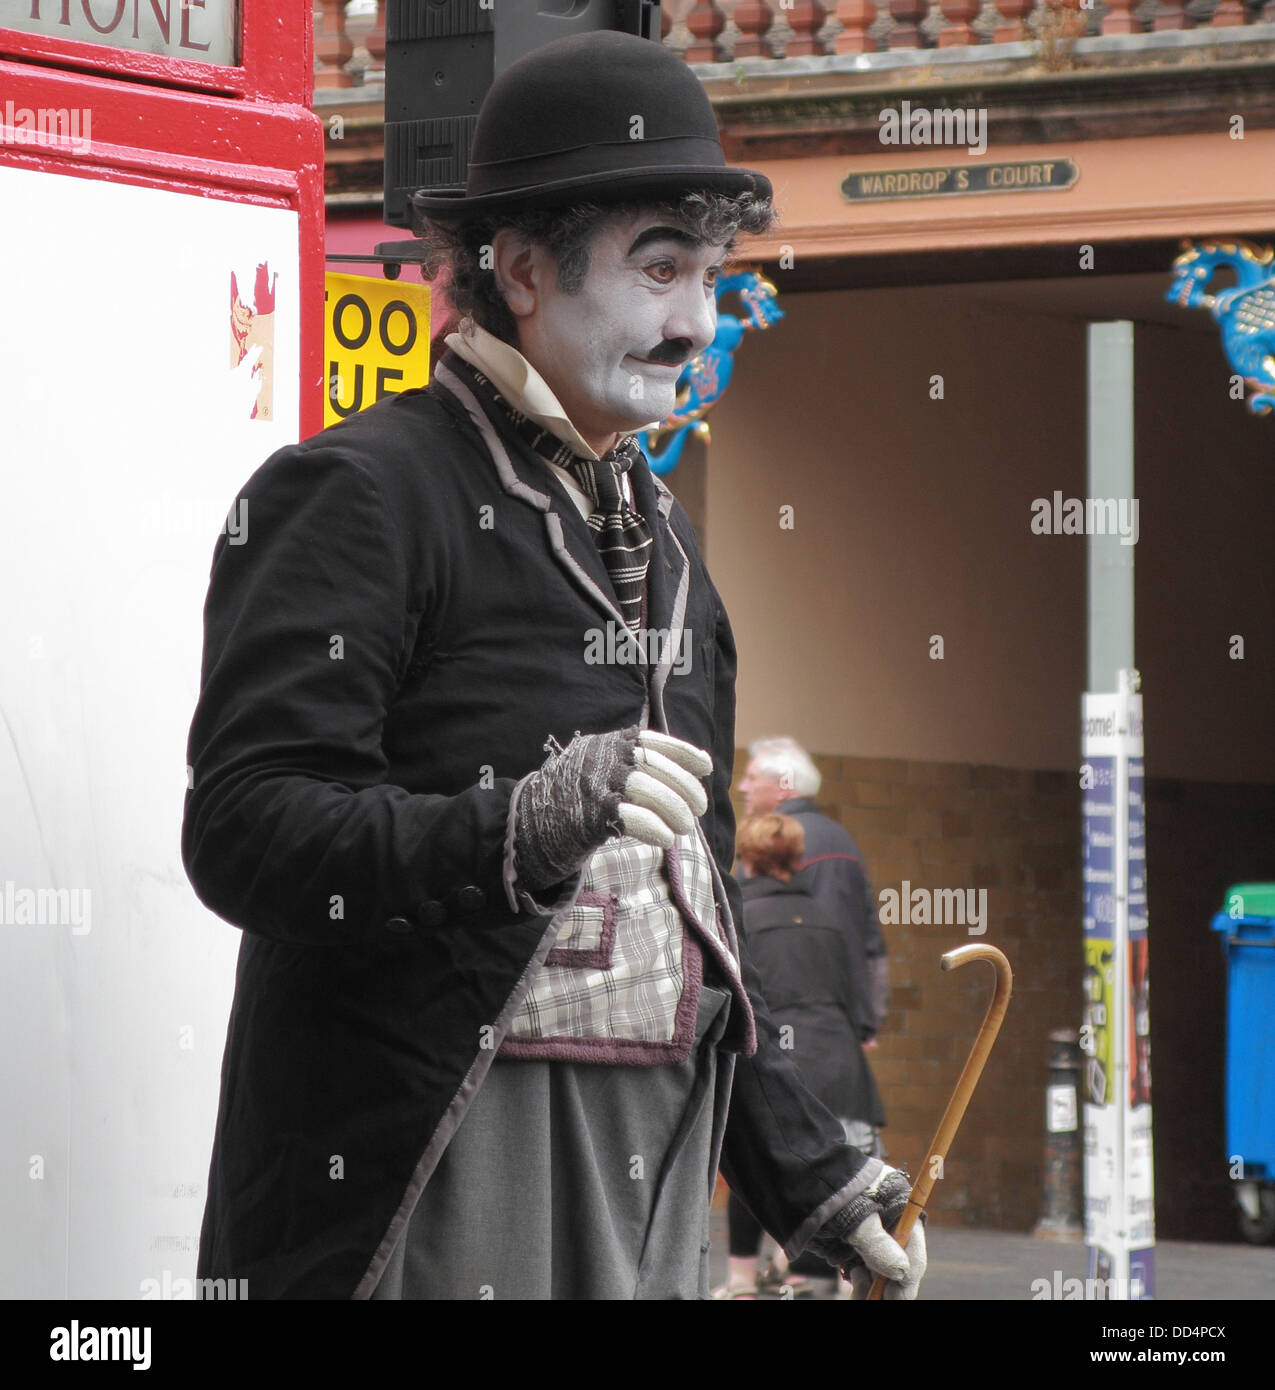 Charlie Chaplin Impersonator during the Edinburgh Fringe Festival, Lawnmarket, The Royal Mile, Edinburgh, Scotland, - Stock Image